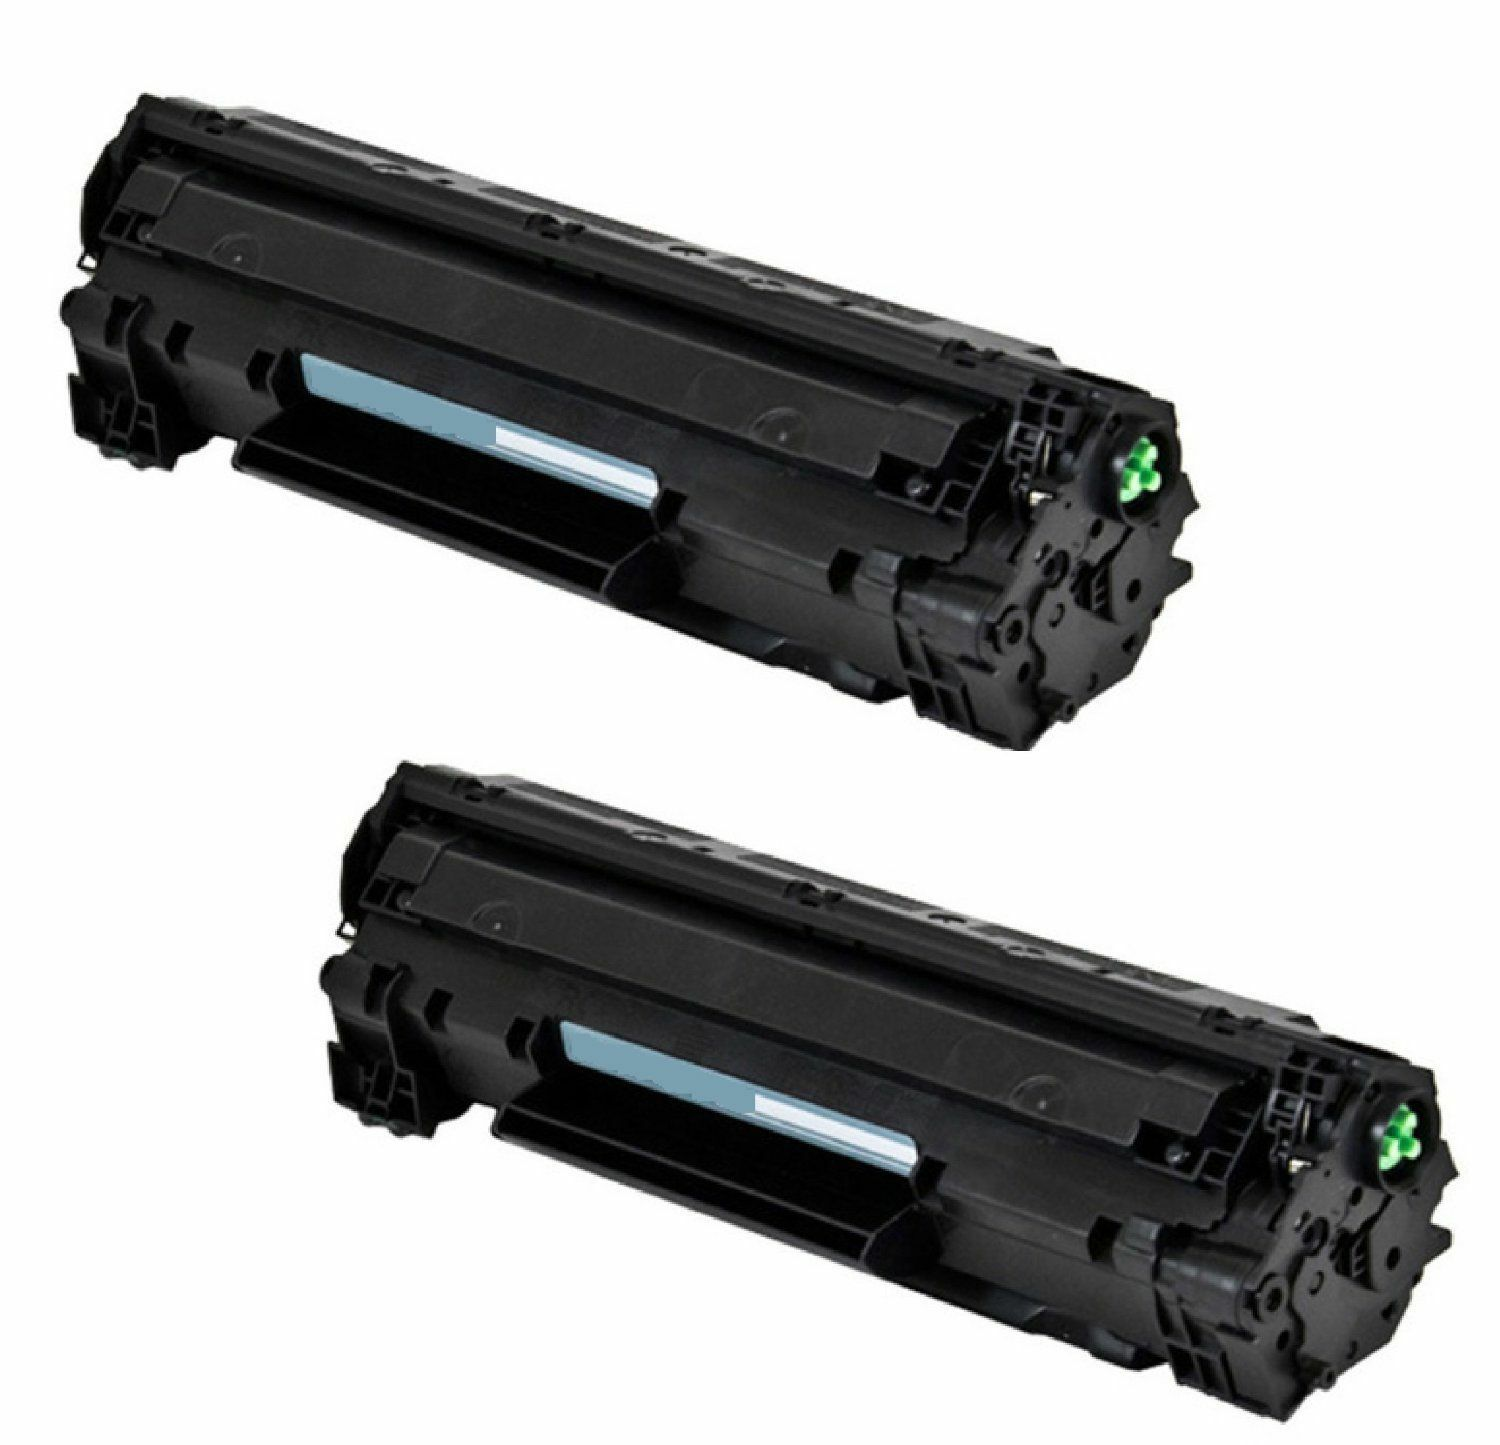 2 Pack Pk Ce285a 85a 285a Toner Cartridge For Hp Laserjet P1102 M1132 Compatible P1102w M1212nf 1 Of 2free Shipping See More